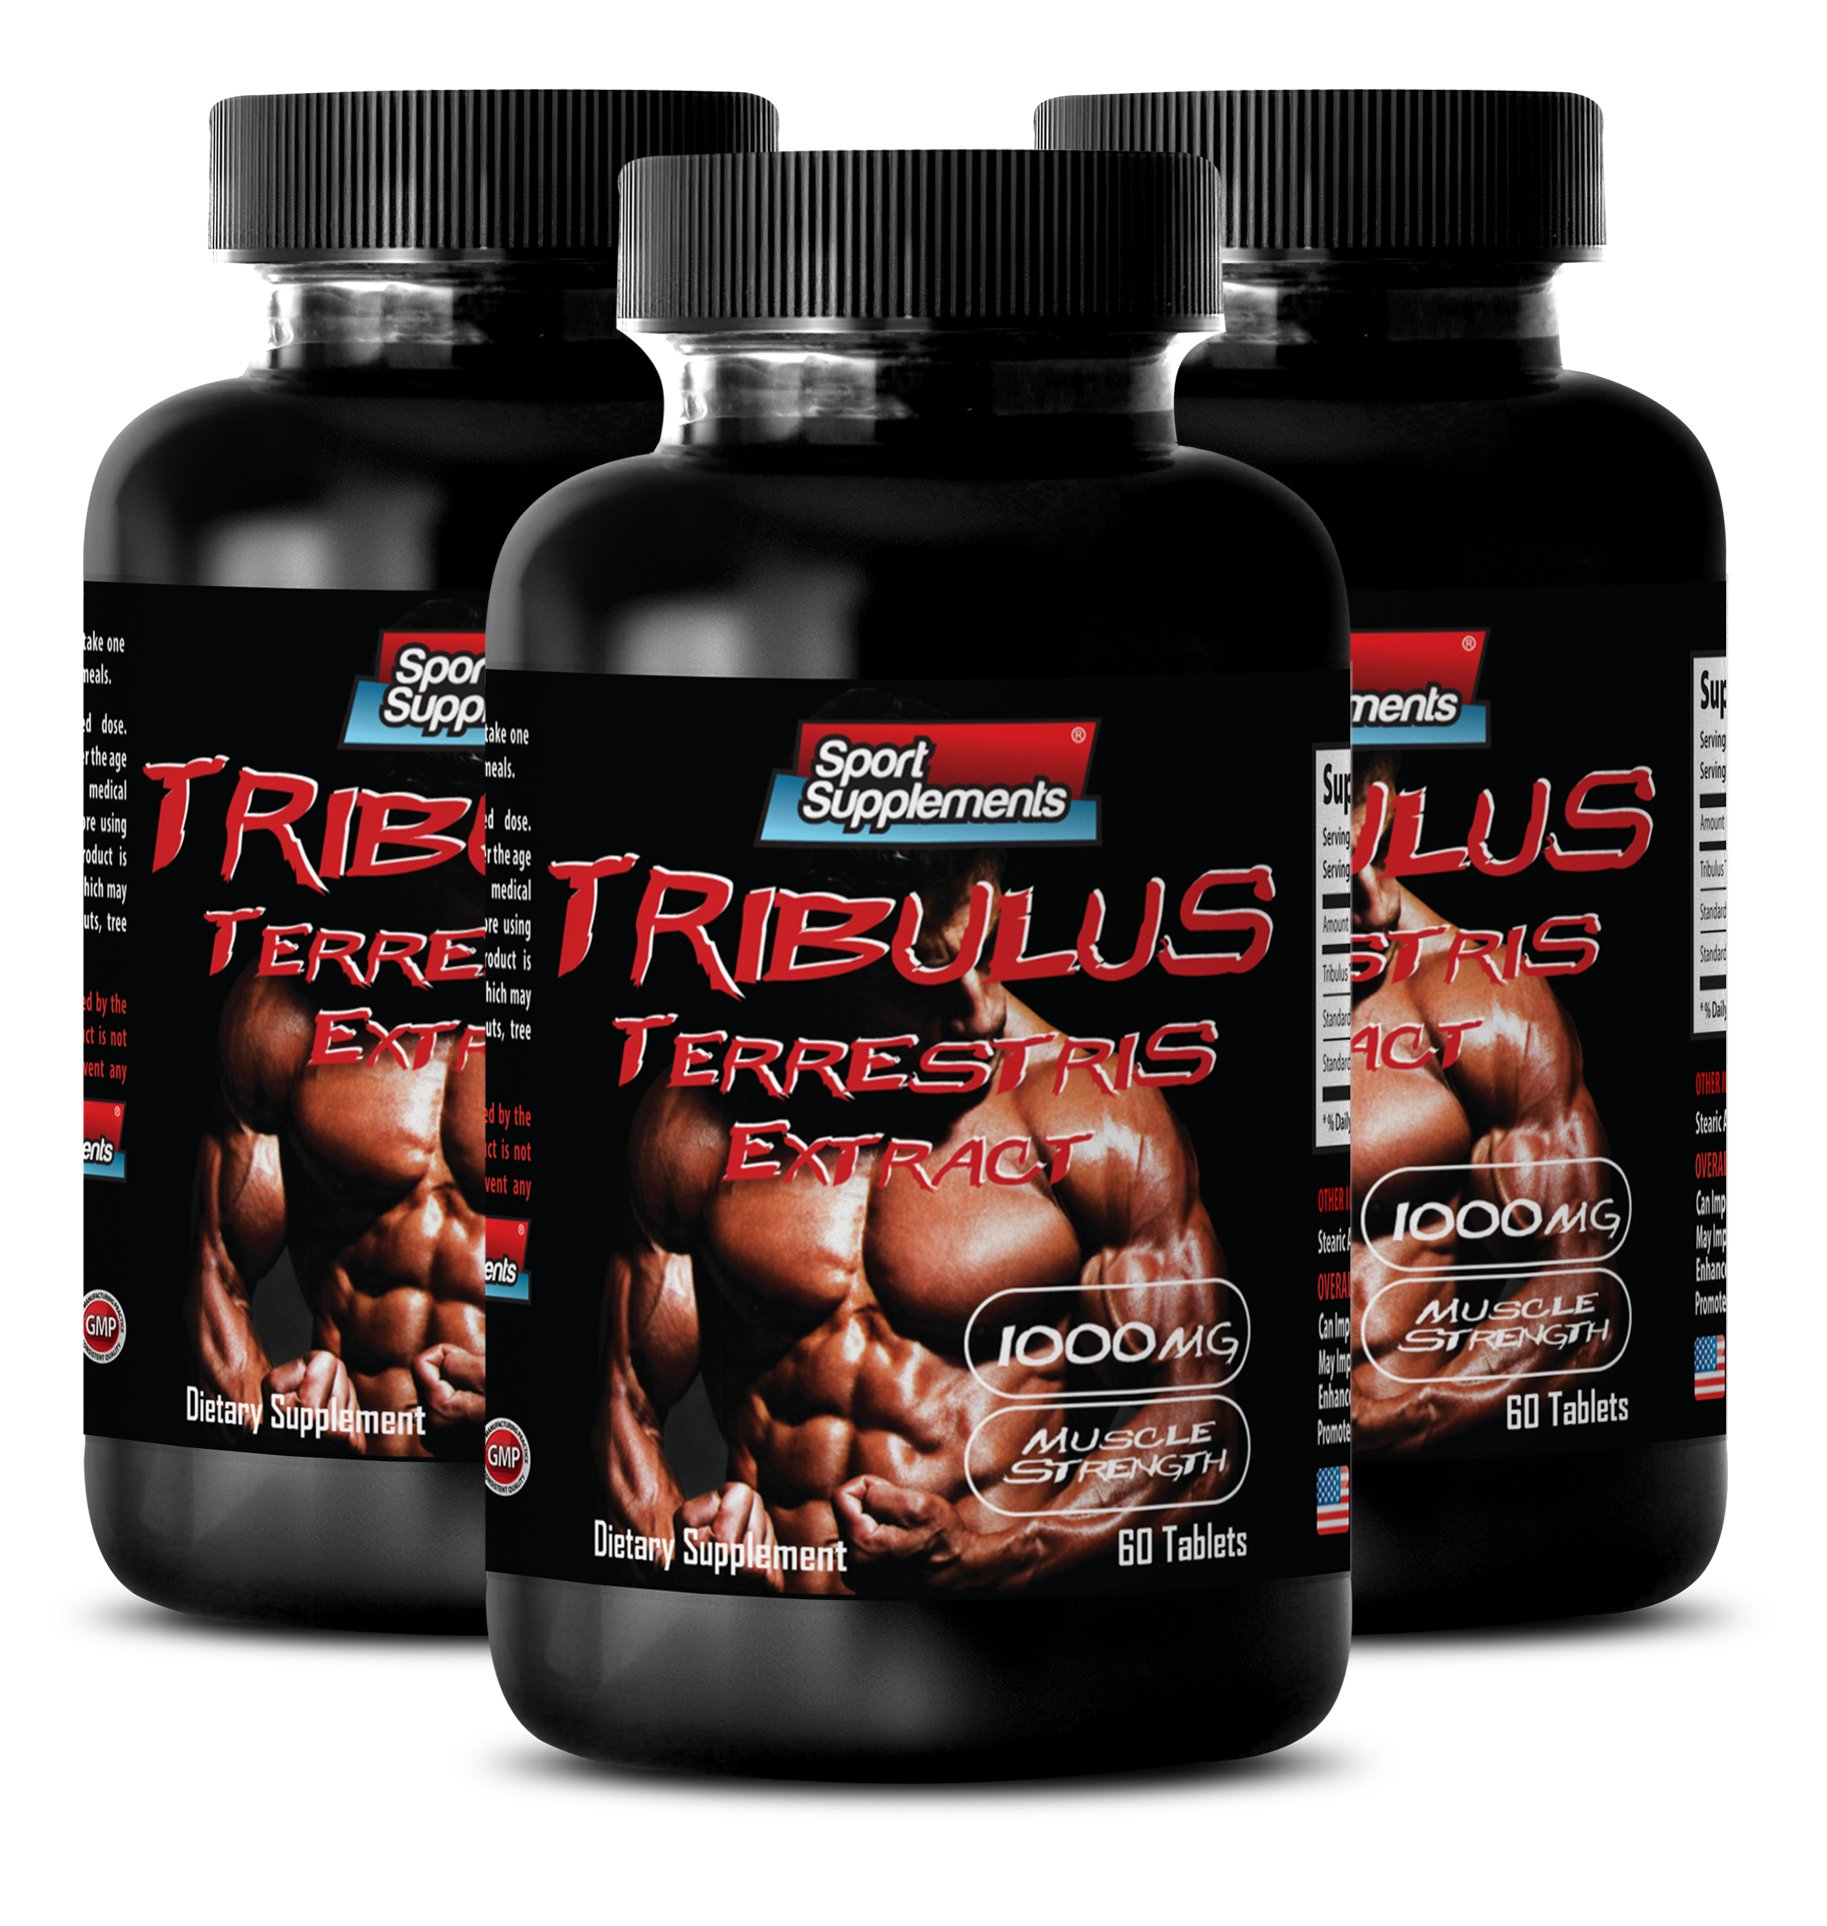 Male enchantment pills - TRIBULUS TERRESTRIS EXTRACT 1000mg with Standardized 400mg Natural Saponins - Boost Testosterone Naturally - 3 Bottles 180 Tablets